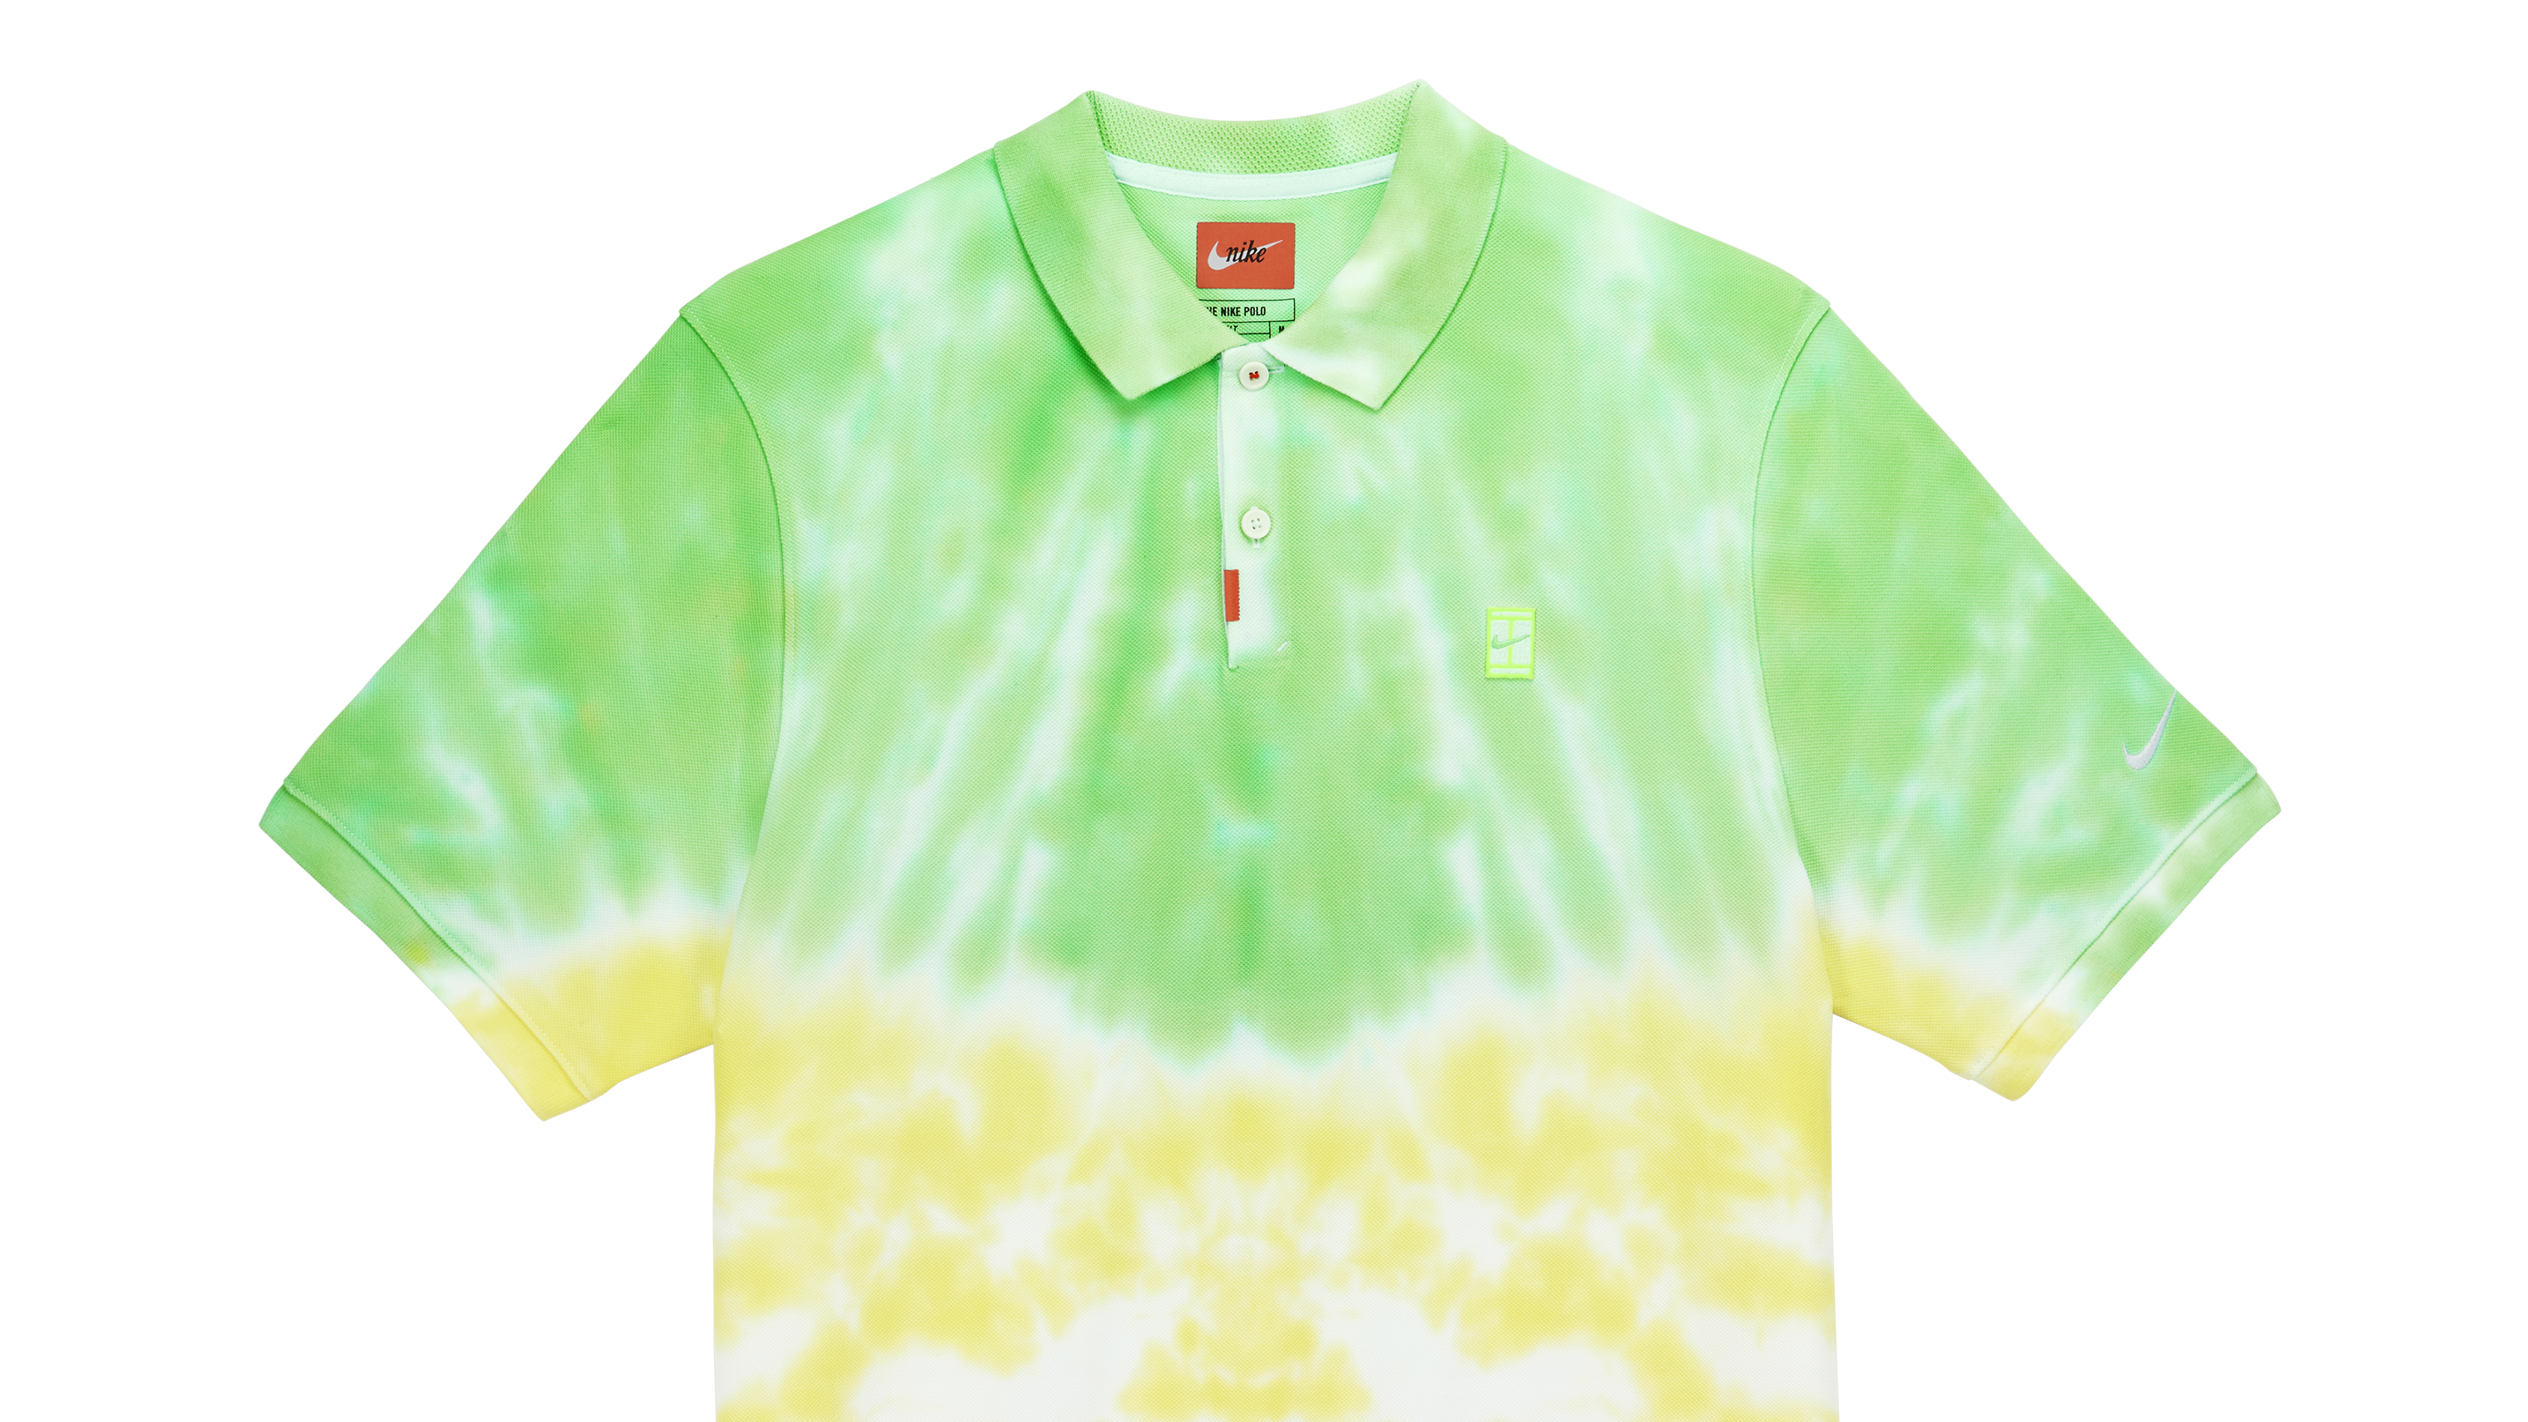 Nike Is Dropping Limited-Edition Hand-Dyed Polo Shirts